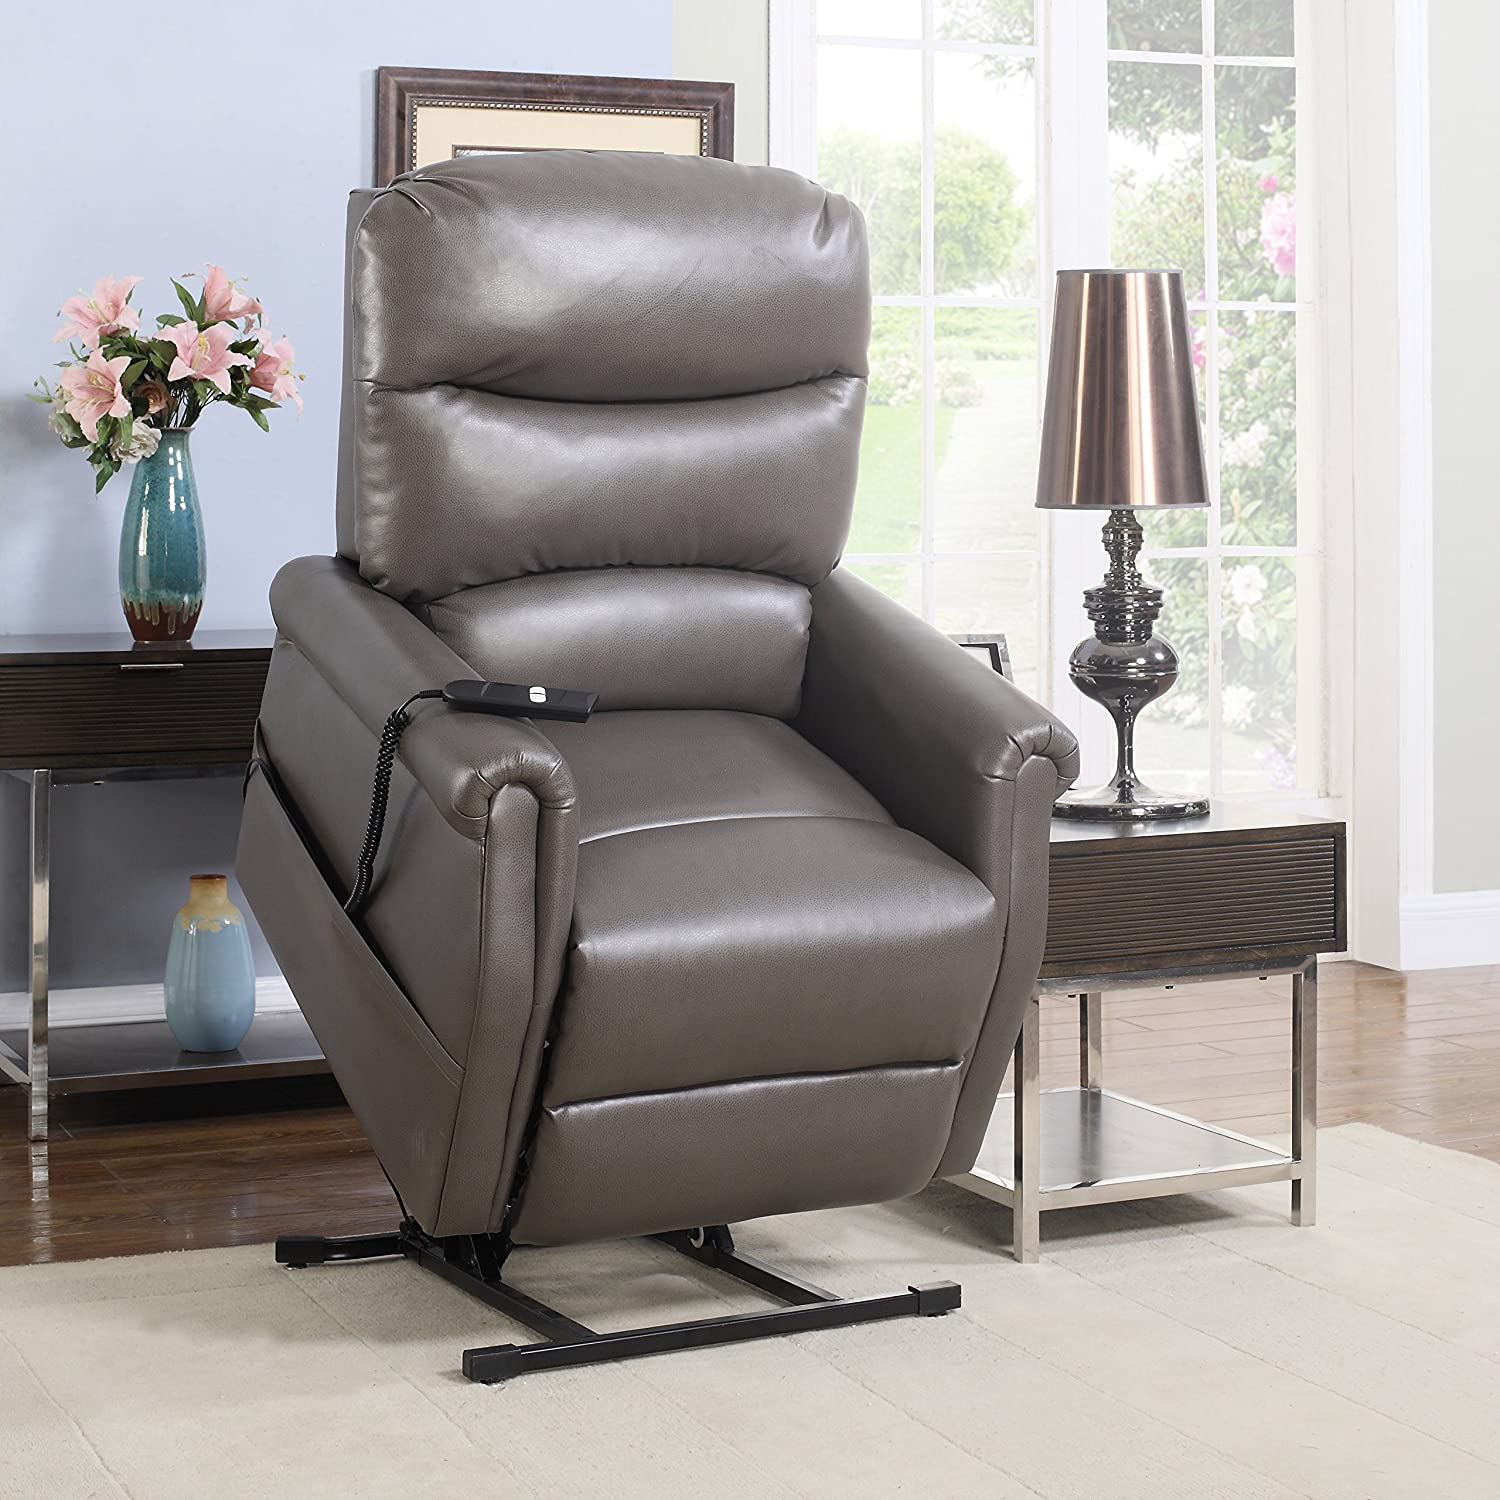 Divano Roma Furniture Classic Plush Bonded Leather Power Lift Recliner Living Room Chair, Large, Grey